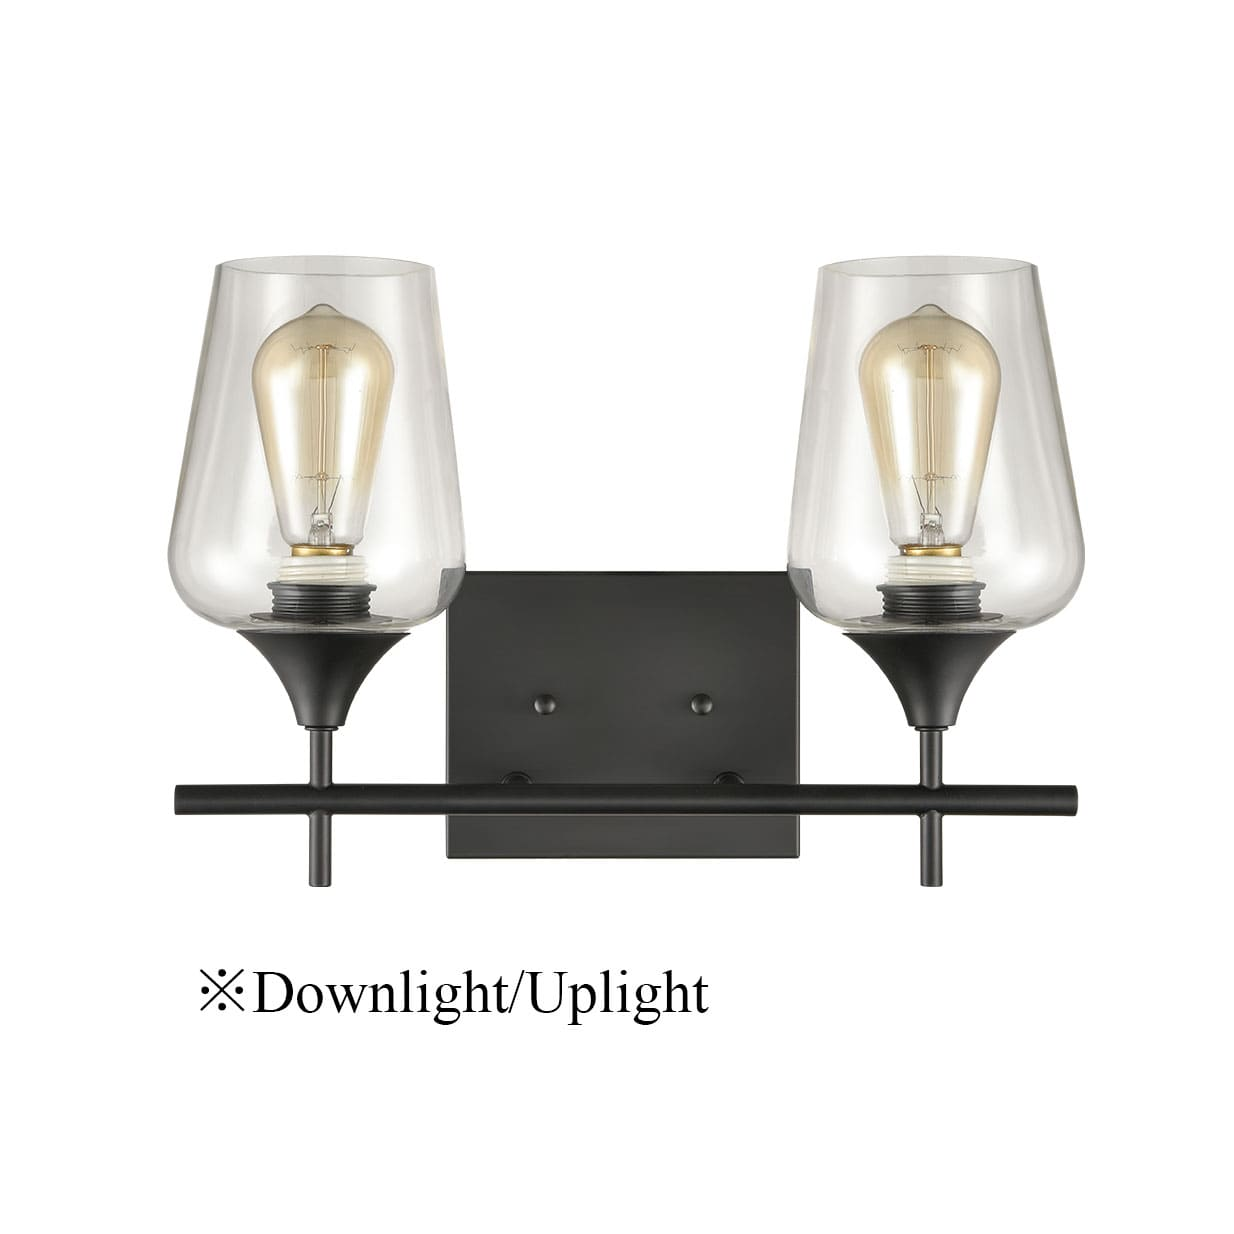 2-Light Bathroom Vanity Lighting Clear Glass Wall Sconces Matte Black